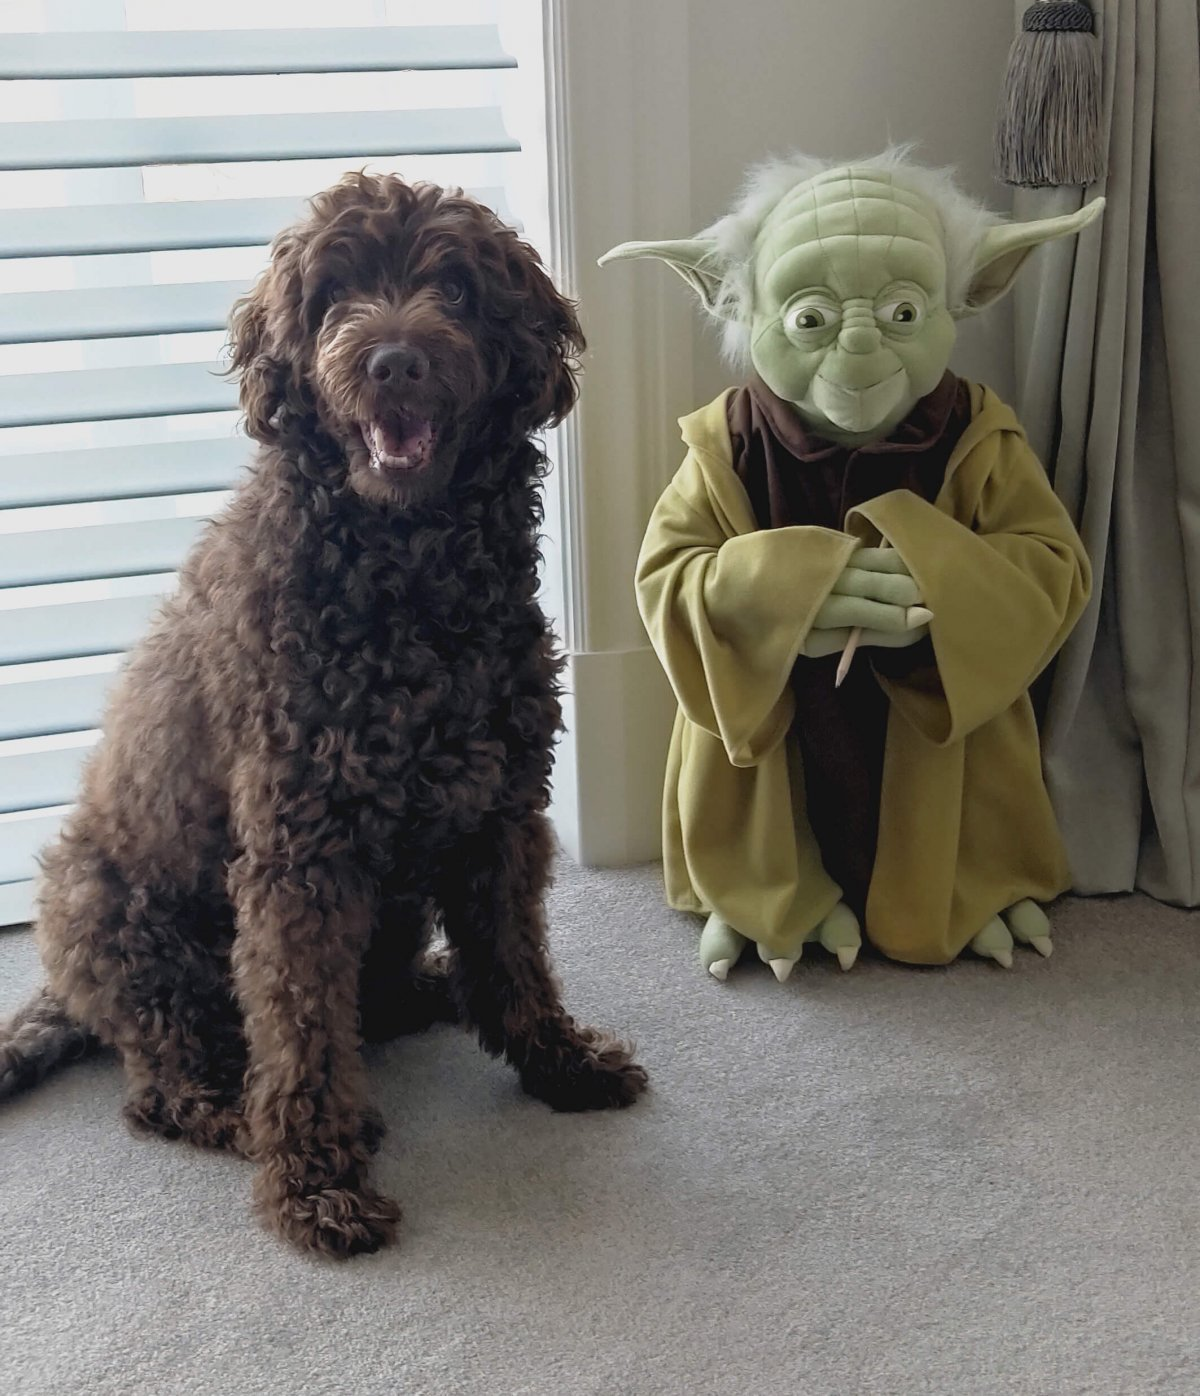 Hugo the dog with Yoda